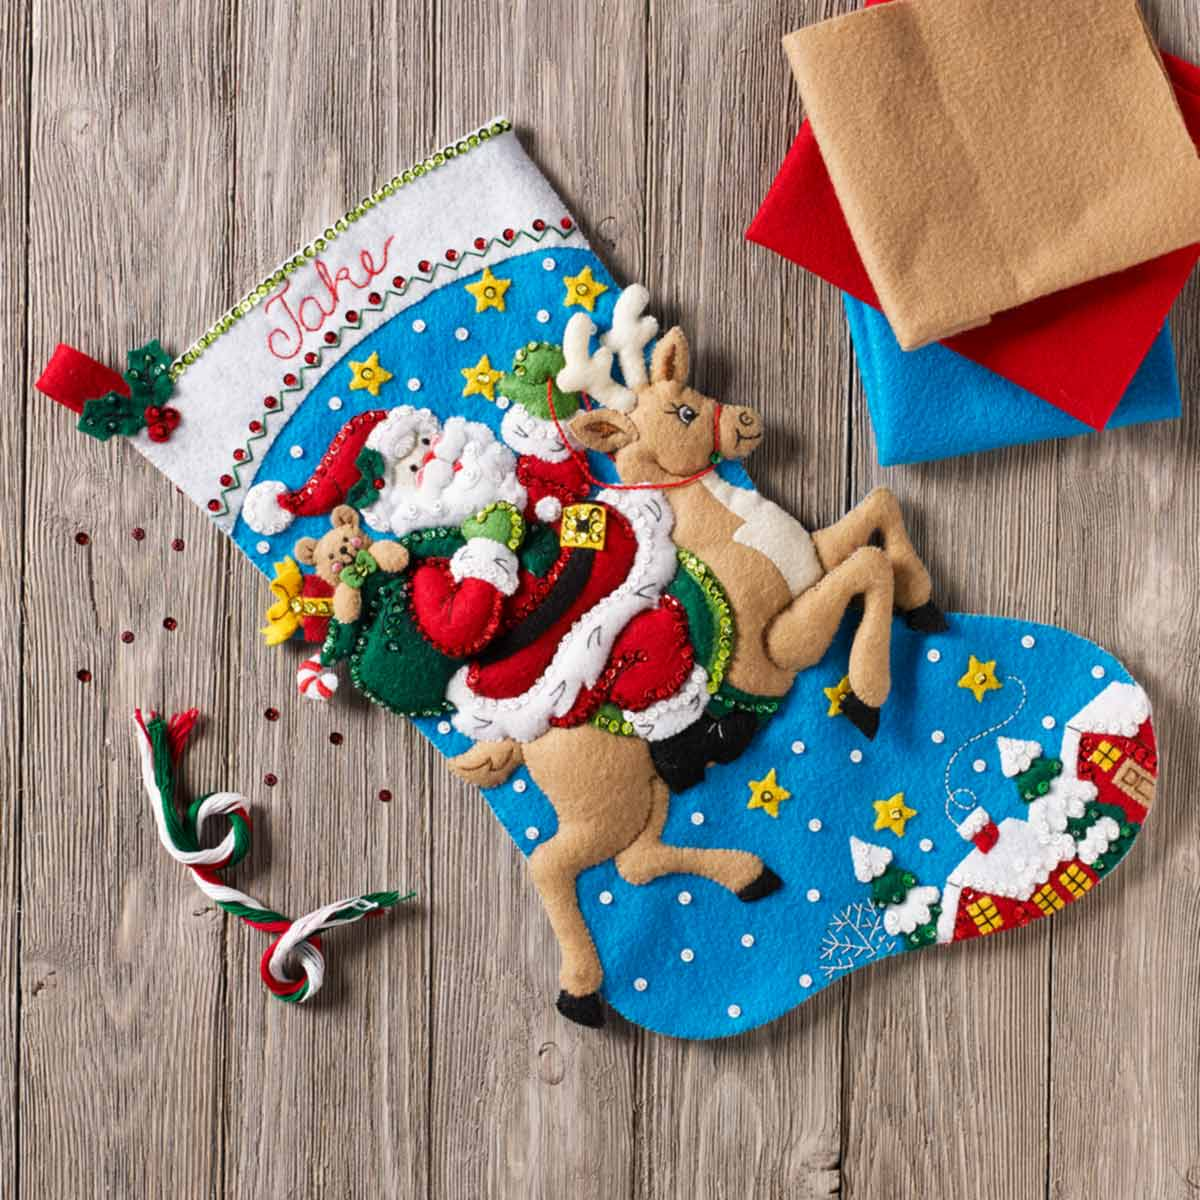 Bucilla ® Seasonal - Felt - Stocking Kits - Reindeer Santa